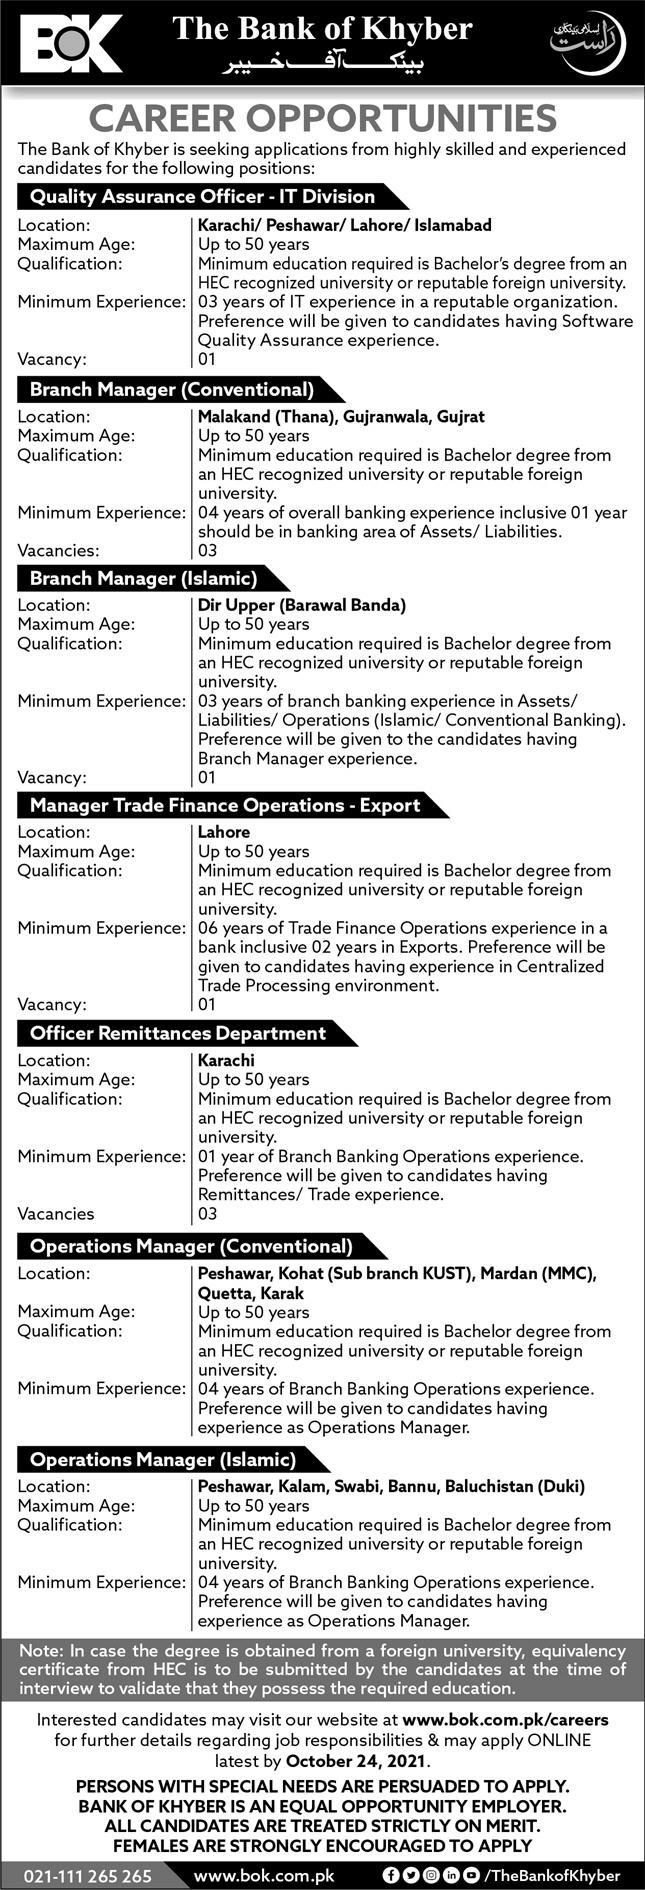 The Bank of Khyber Jobs 10th October 2021